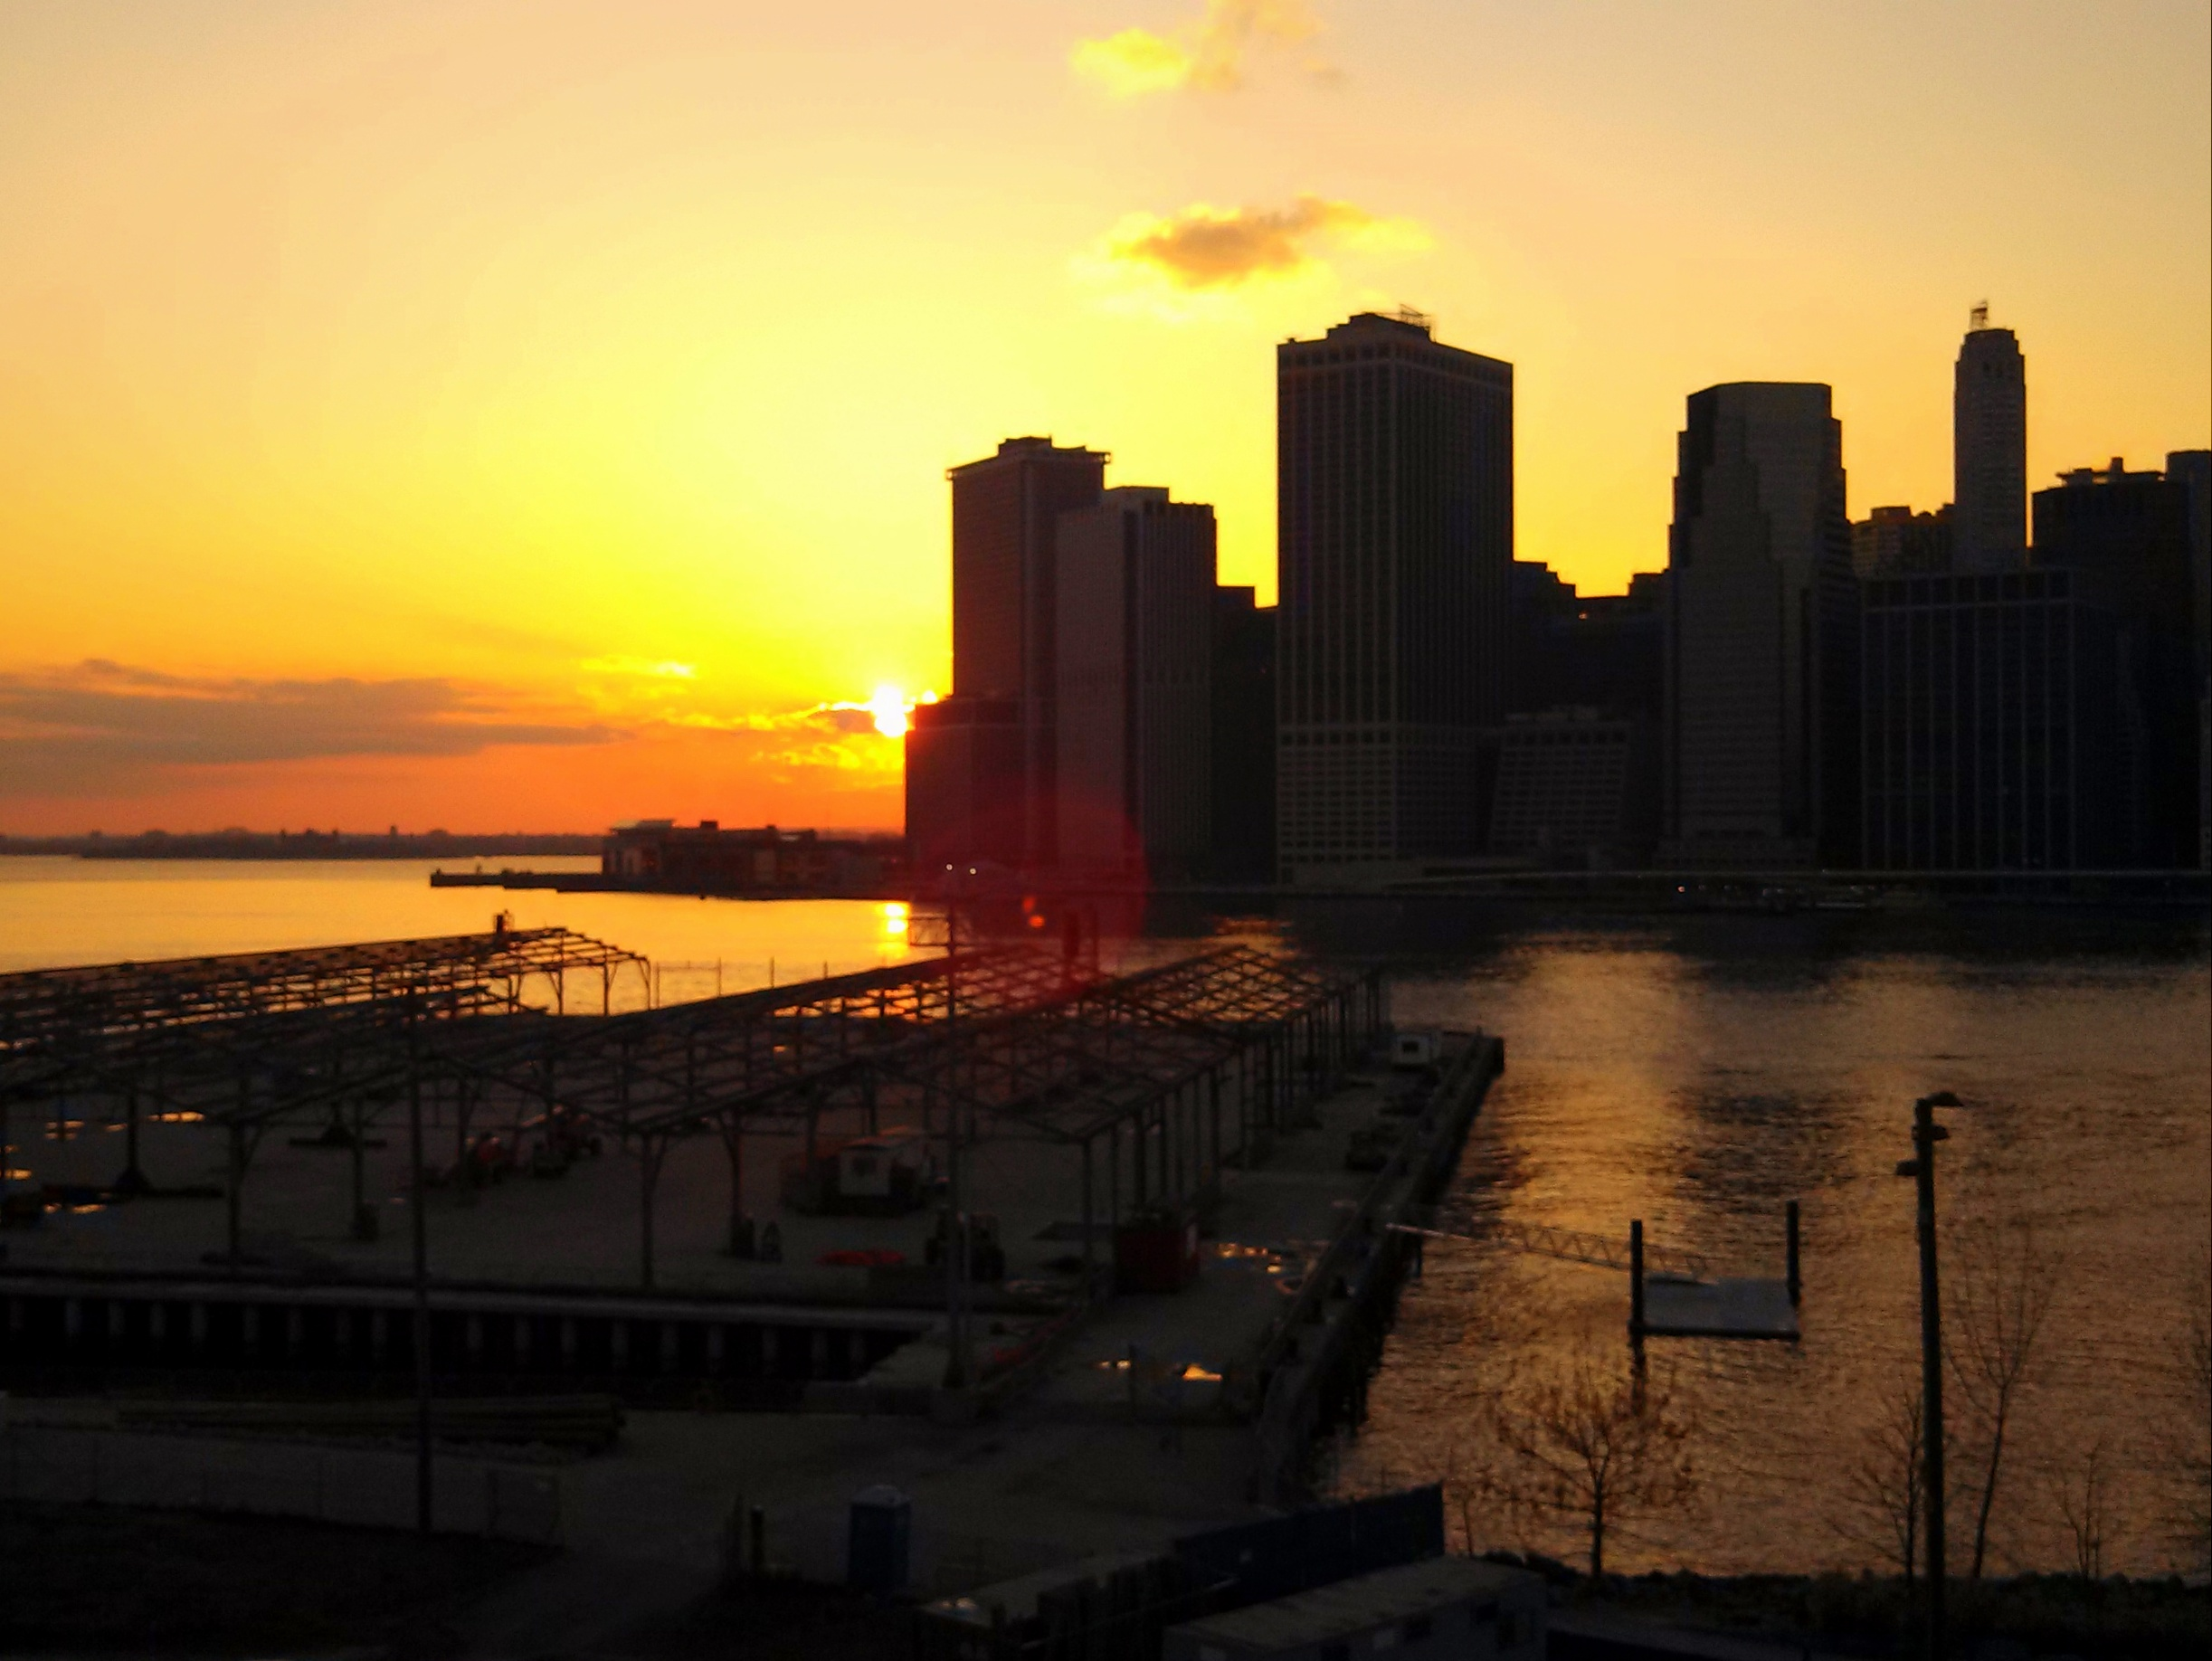 sunset-as-seen-from-the-brooklyn-heights-promenade